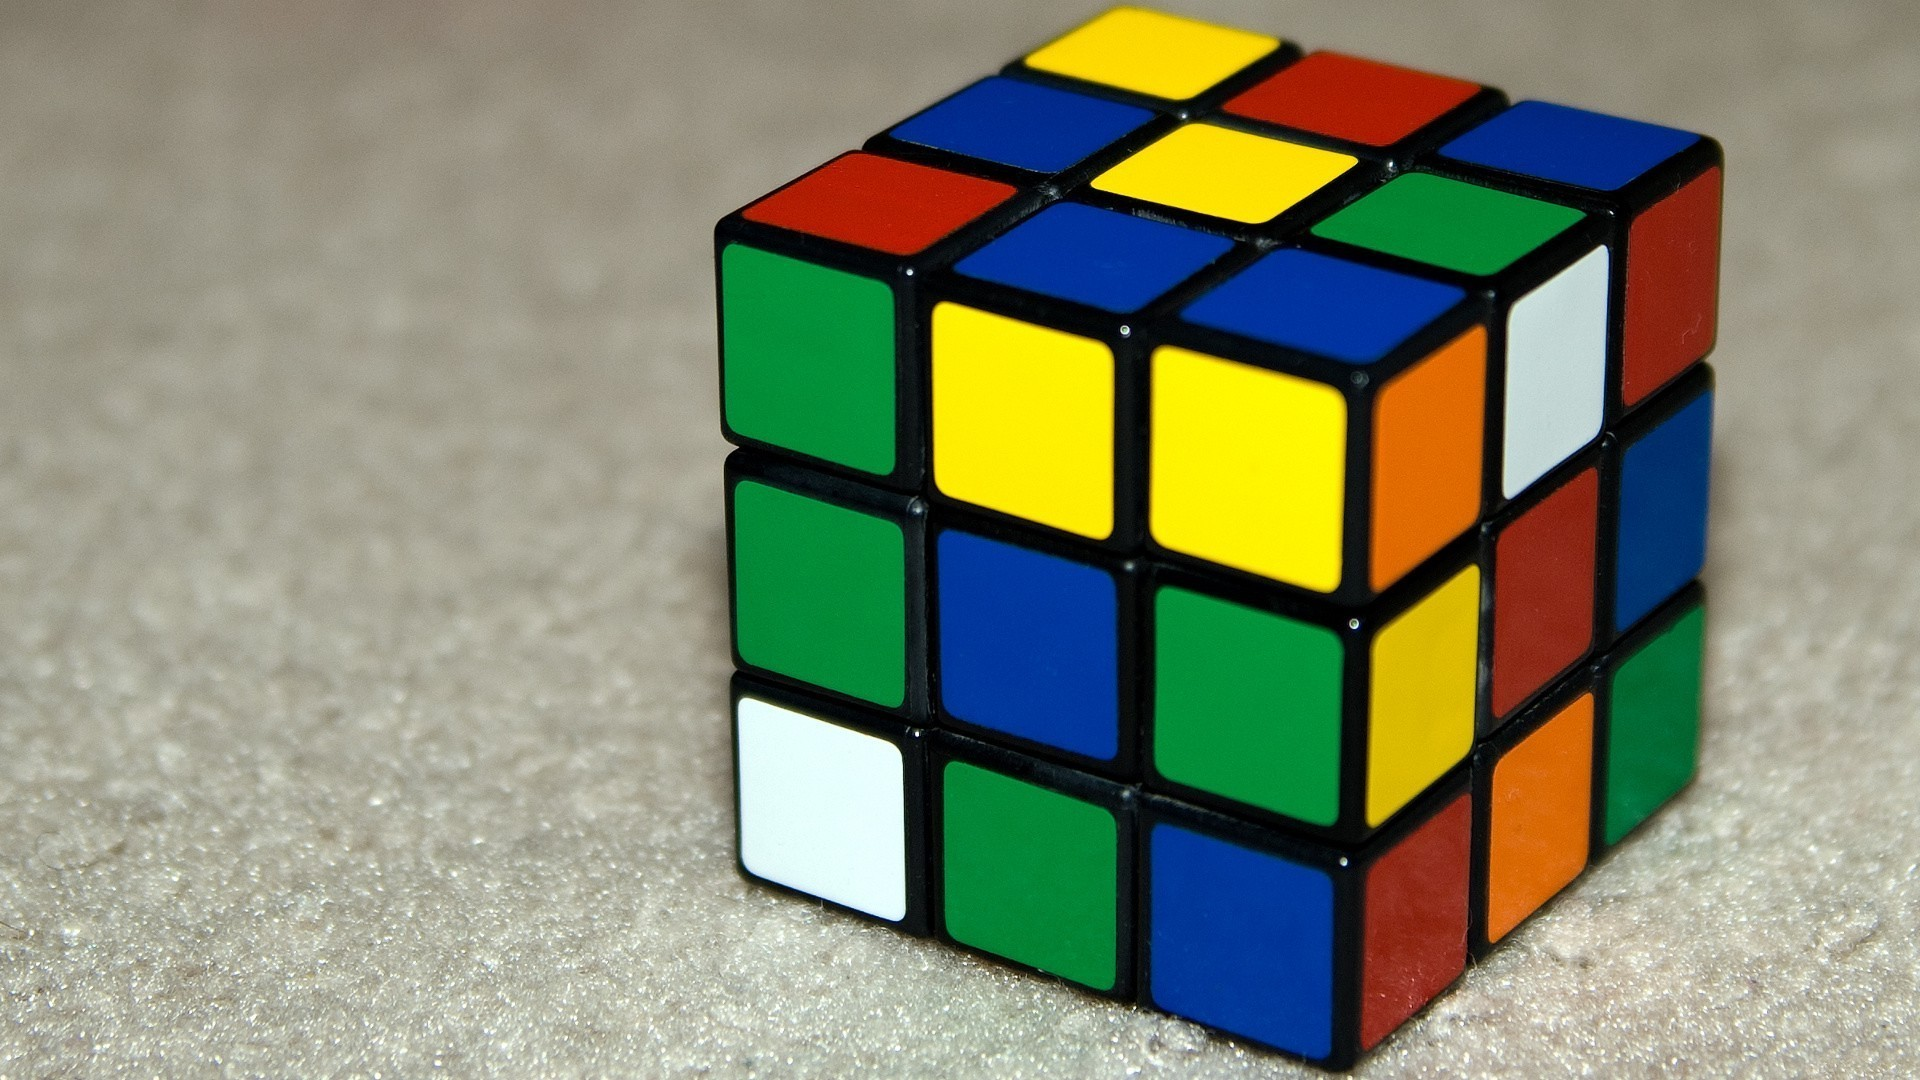 Rubiks Cube Computer Wallpapers Desktop Backgrounds 1920x1080 ID 1920x1080